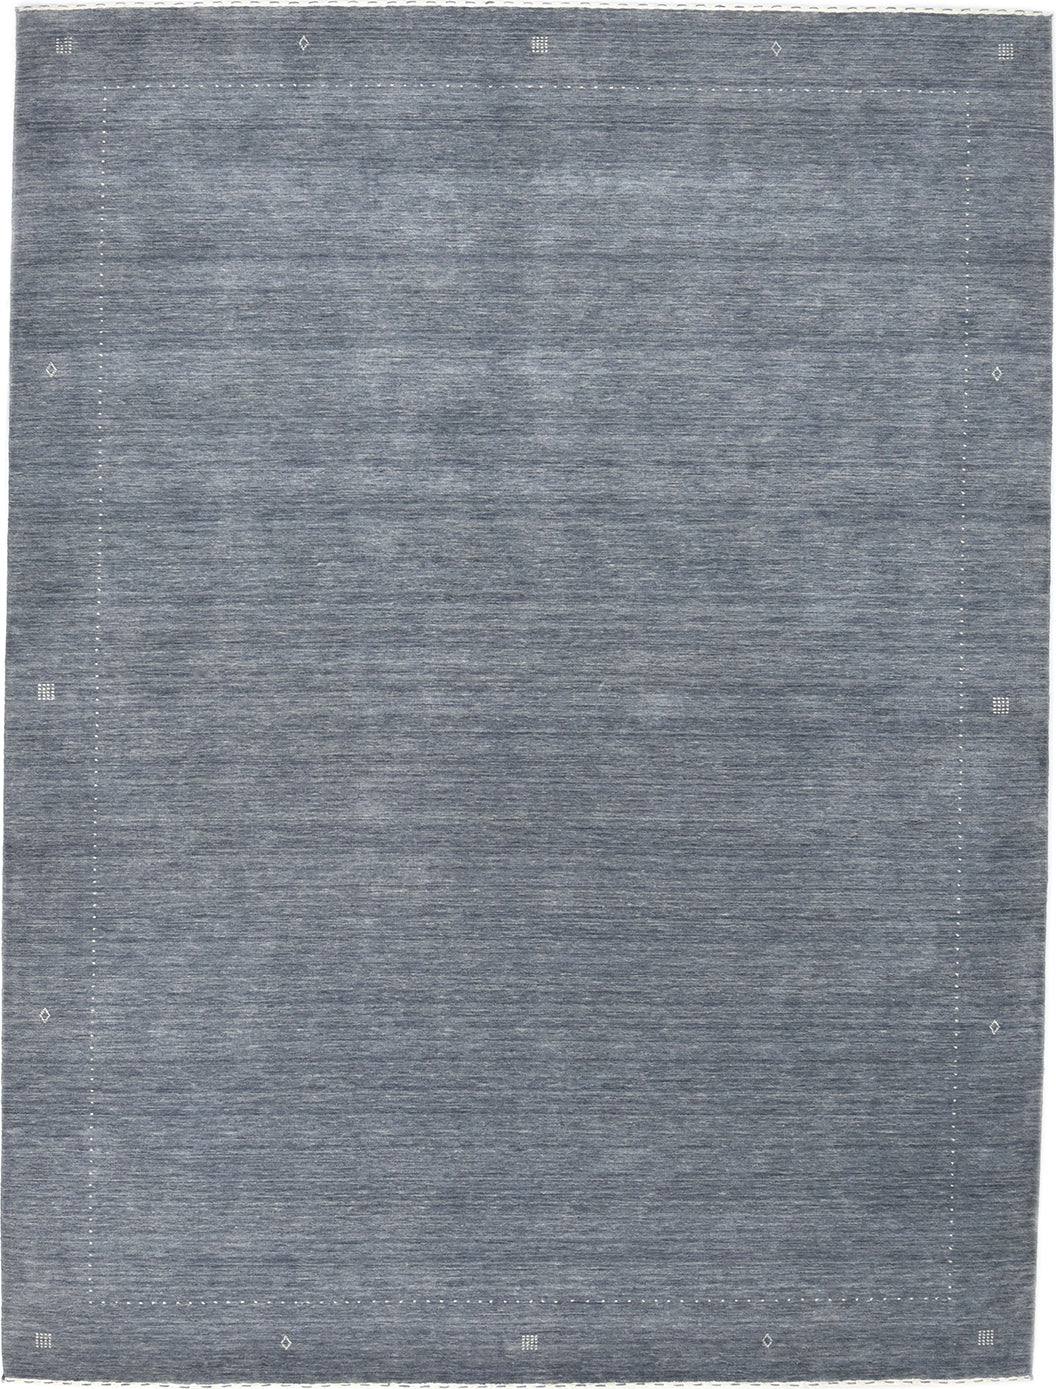 Solo Rugs Gabbeh M8049-6 Gray Area Rug main image